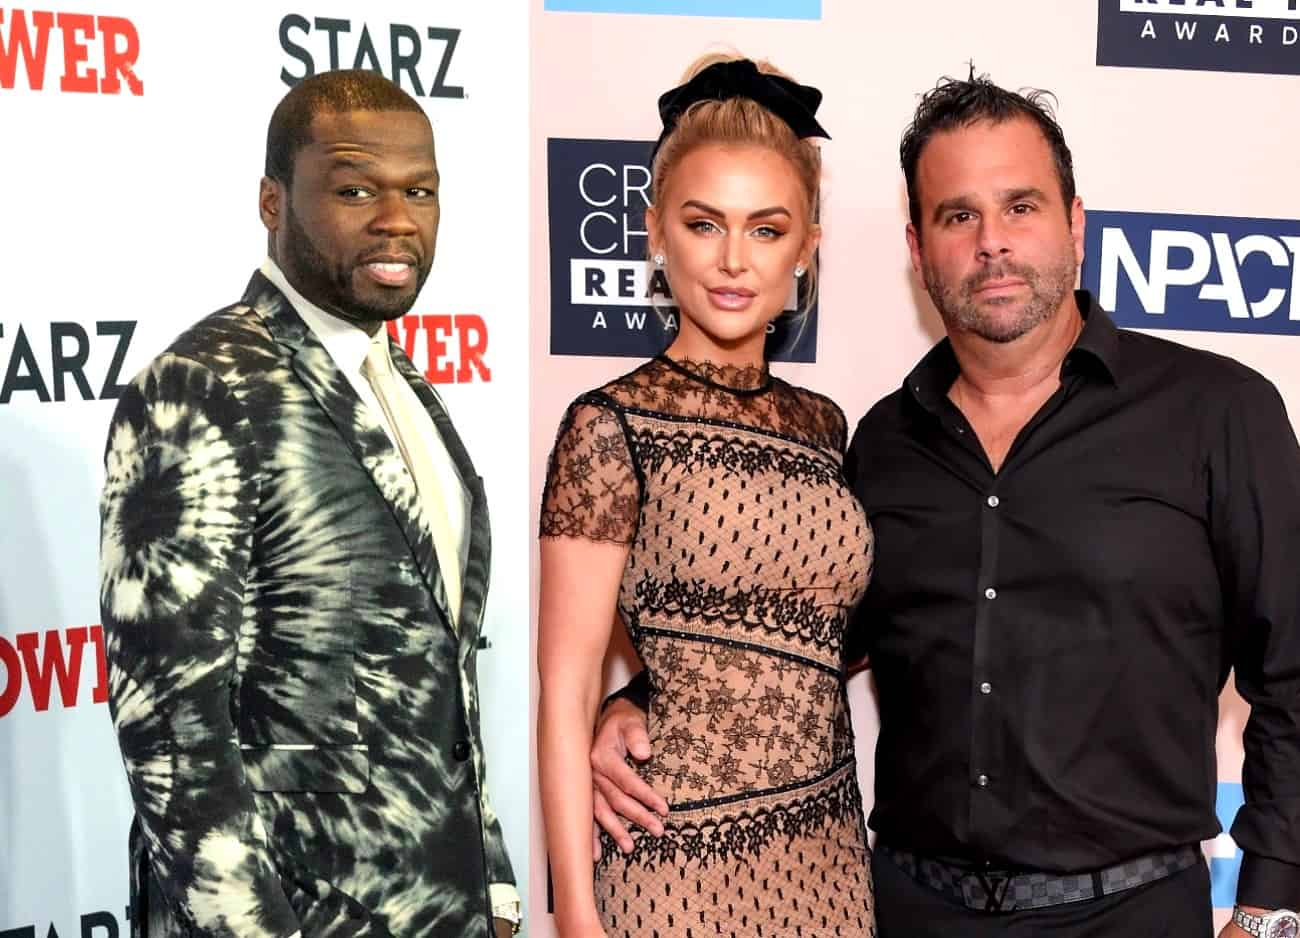 50 Cent Accuses Vanderpump Rules' Lala Kent and Randall Emmett of Threatening to Sue Him, Shares Details of Their Settlement and Continues Instagram Posts